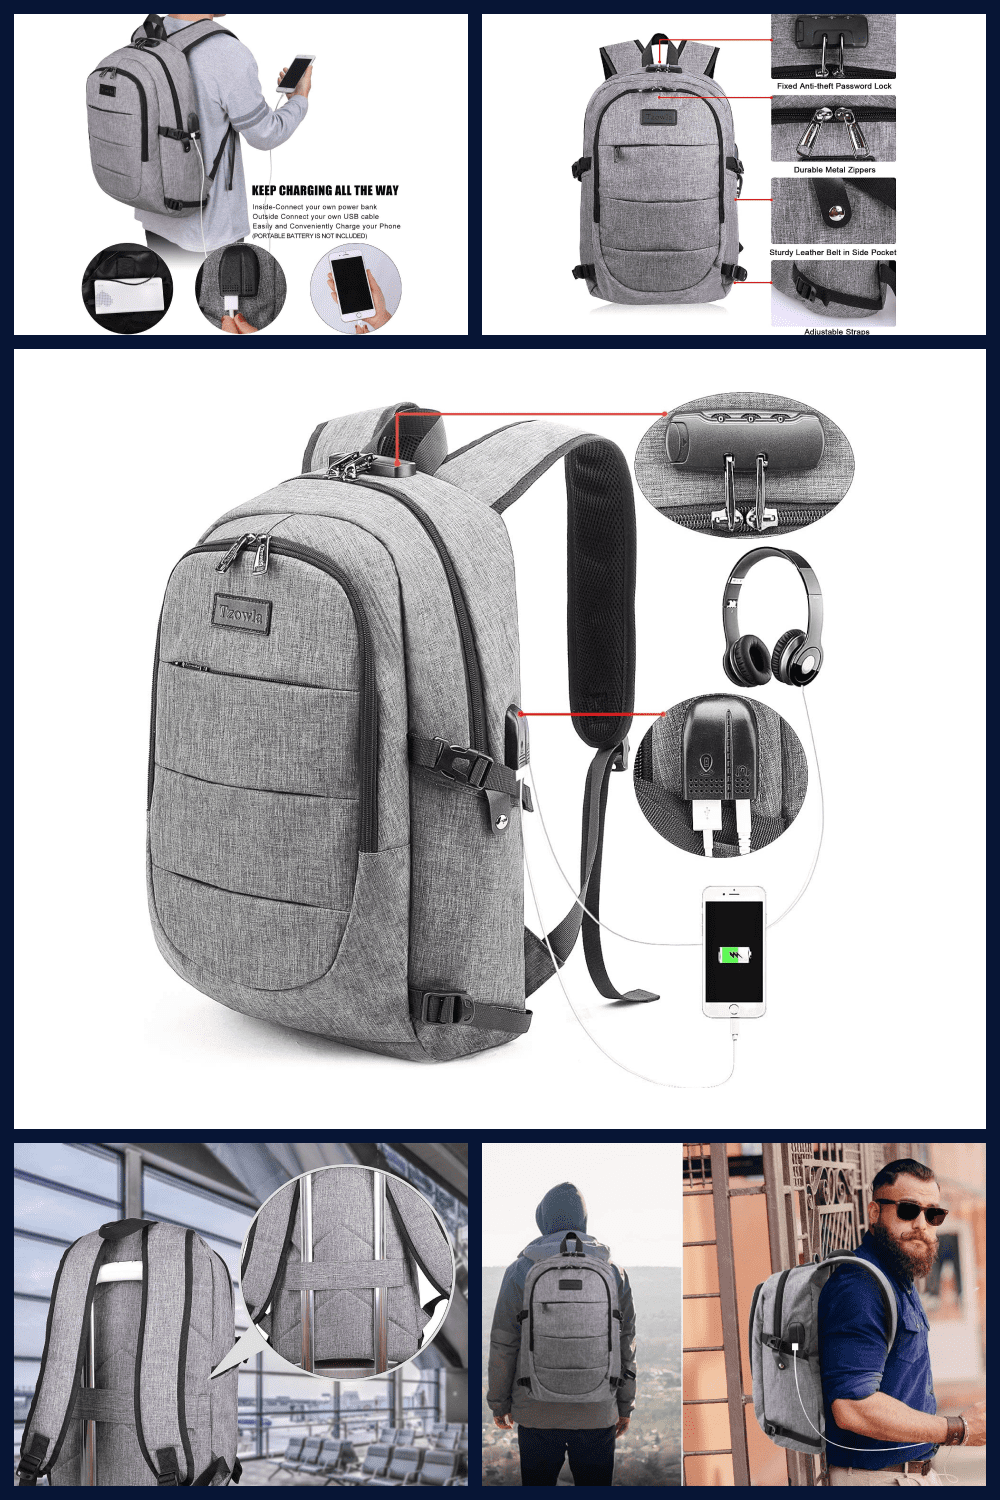 A capacious gray backpack with a stylish design.